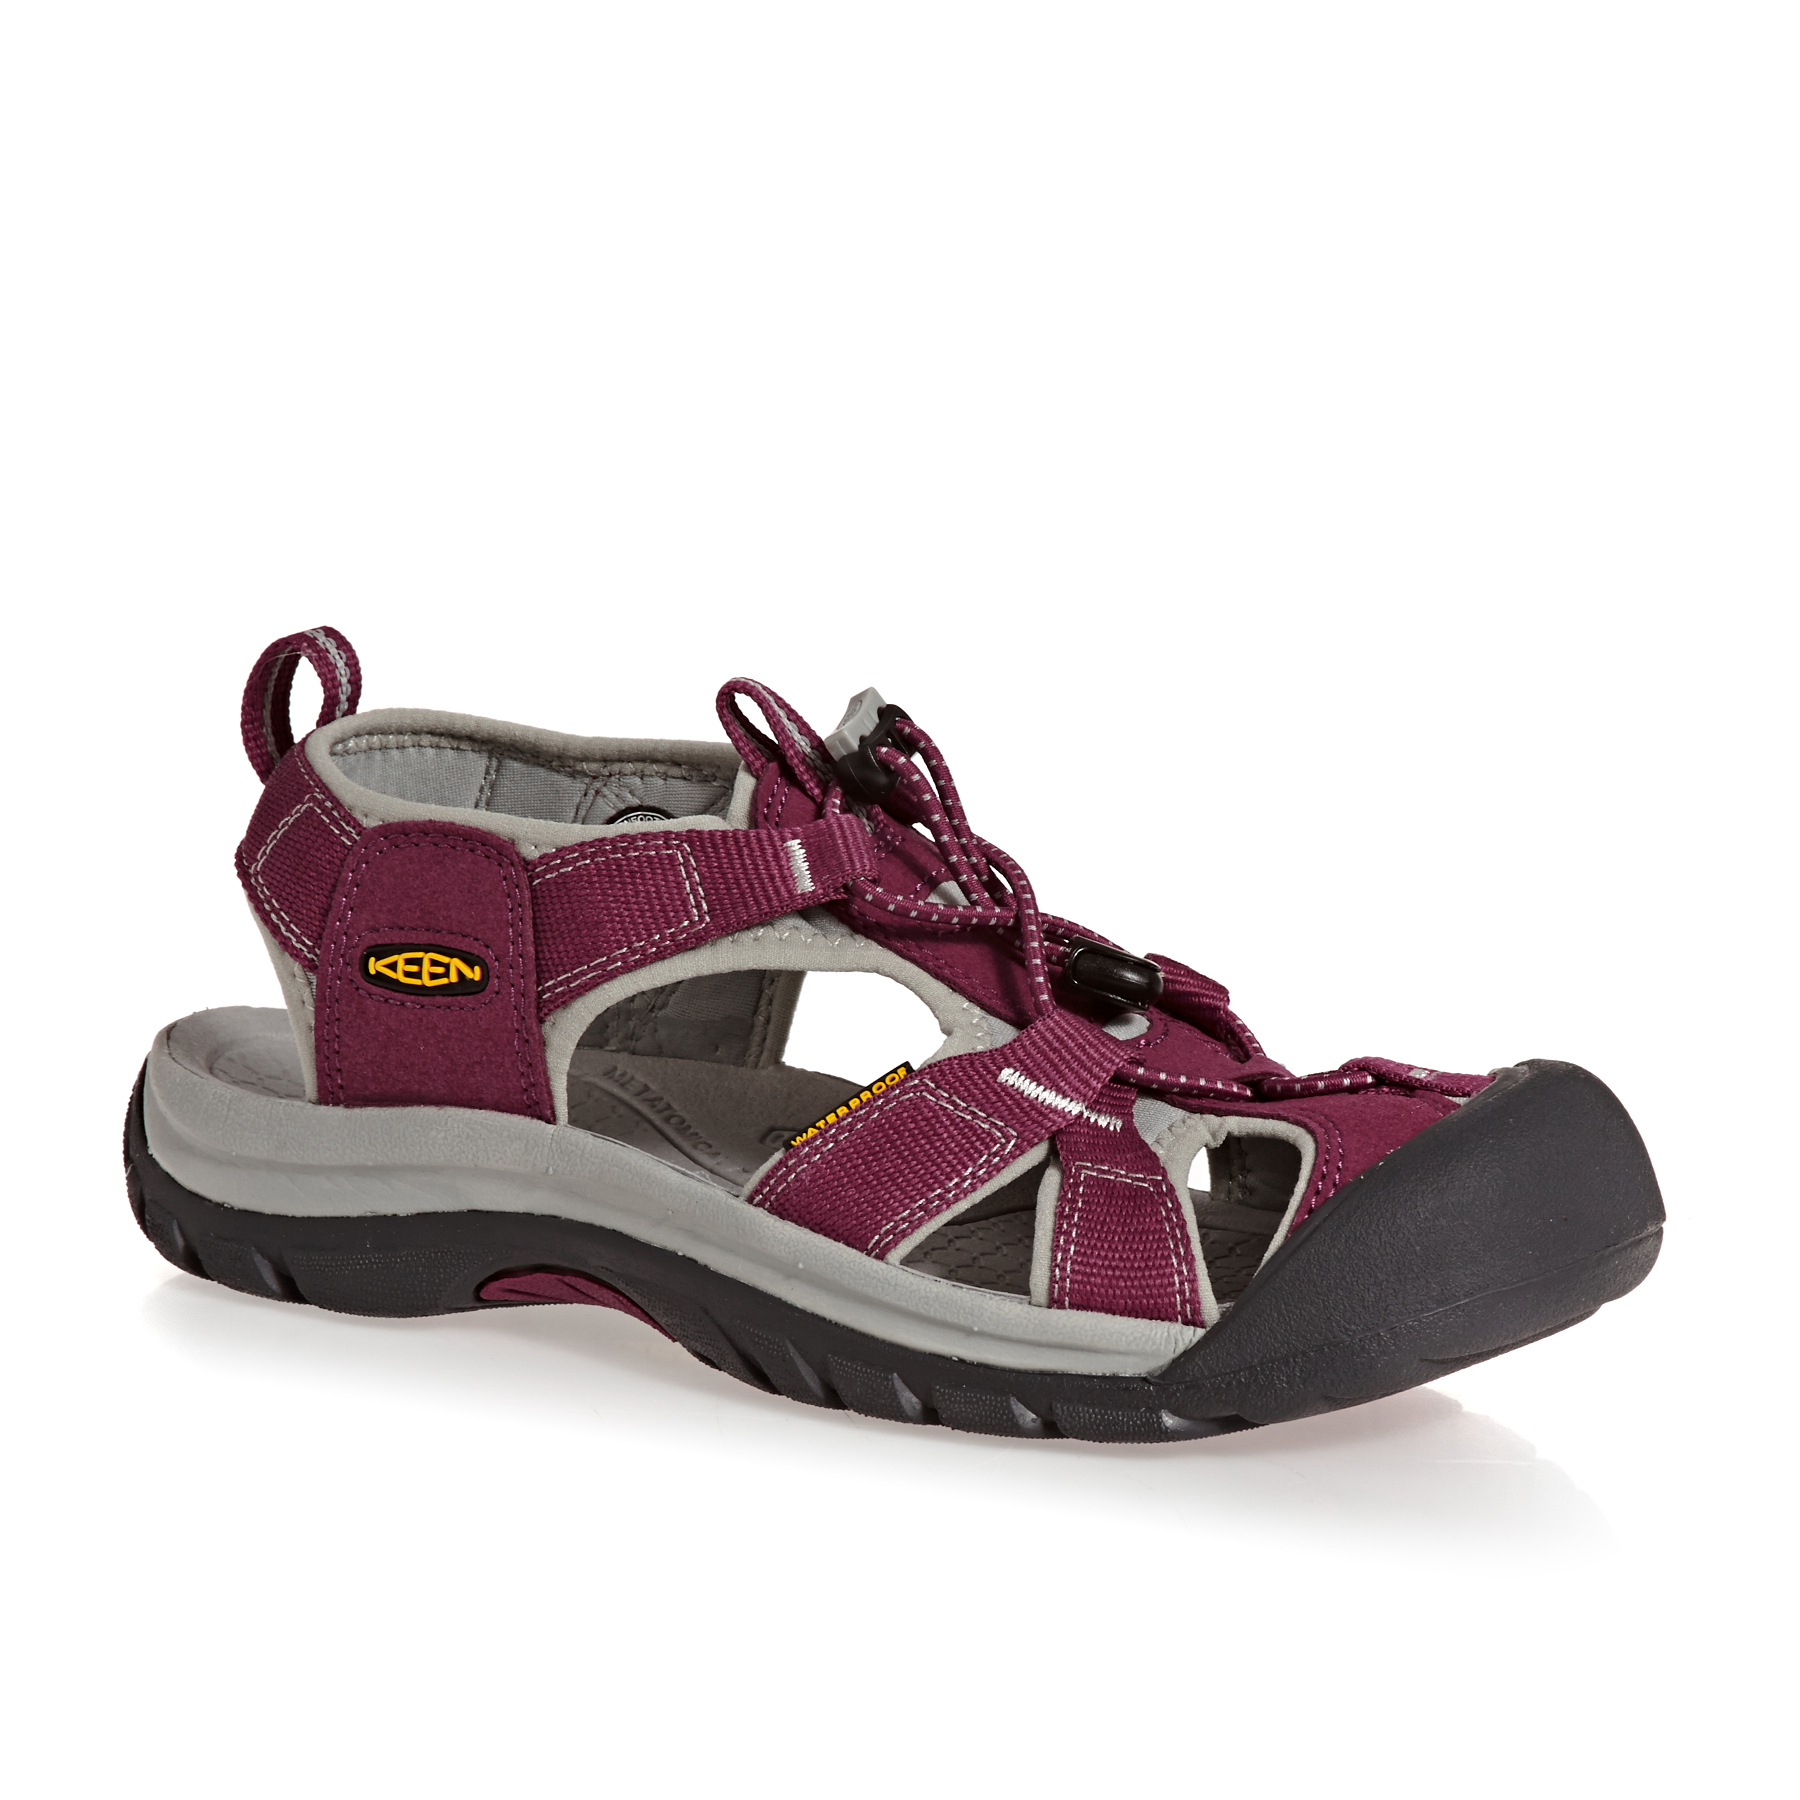 Keen Shoes and Sandals - Free Delivery